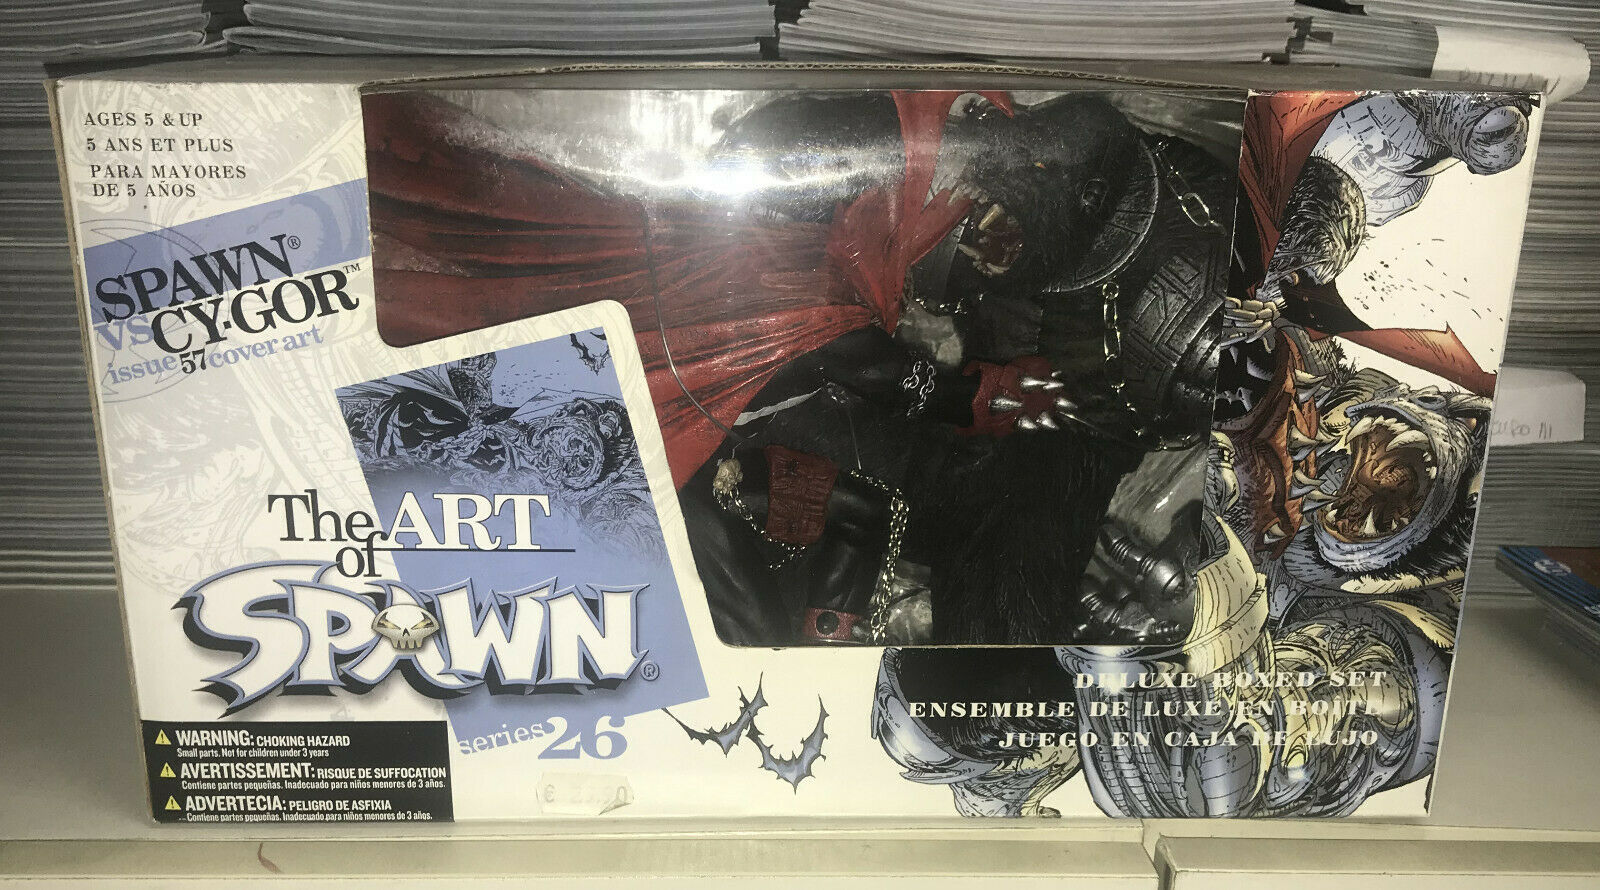 SPAWN VS CY-GOR Deluxe scatolaed Set (THE ART OF SPAWN SERIES 26) McFarlane giocattoli